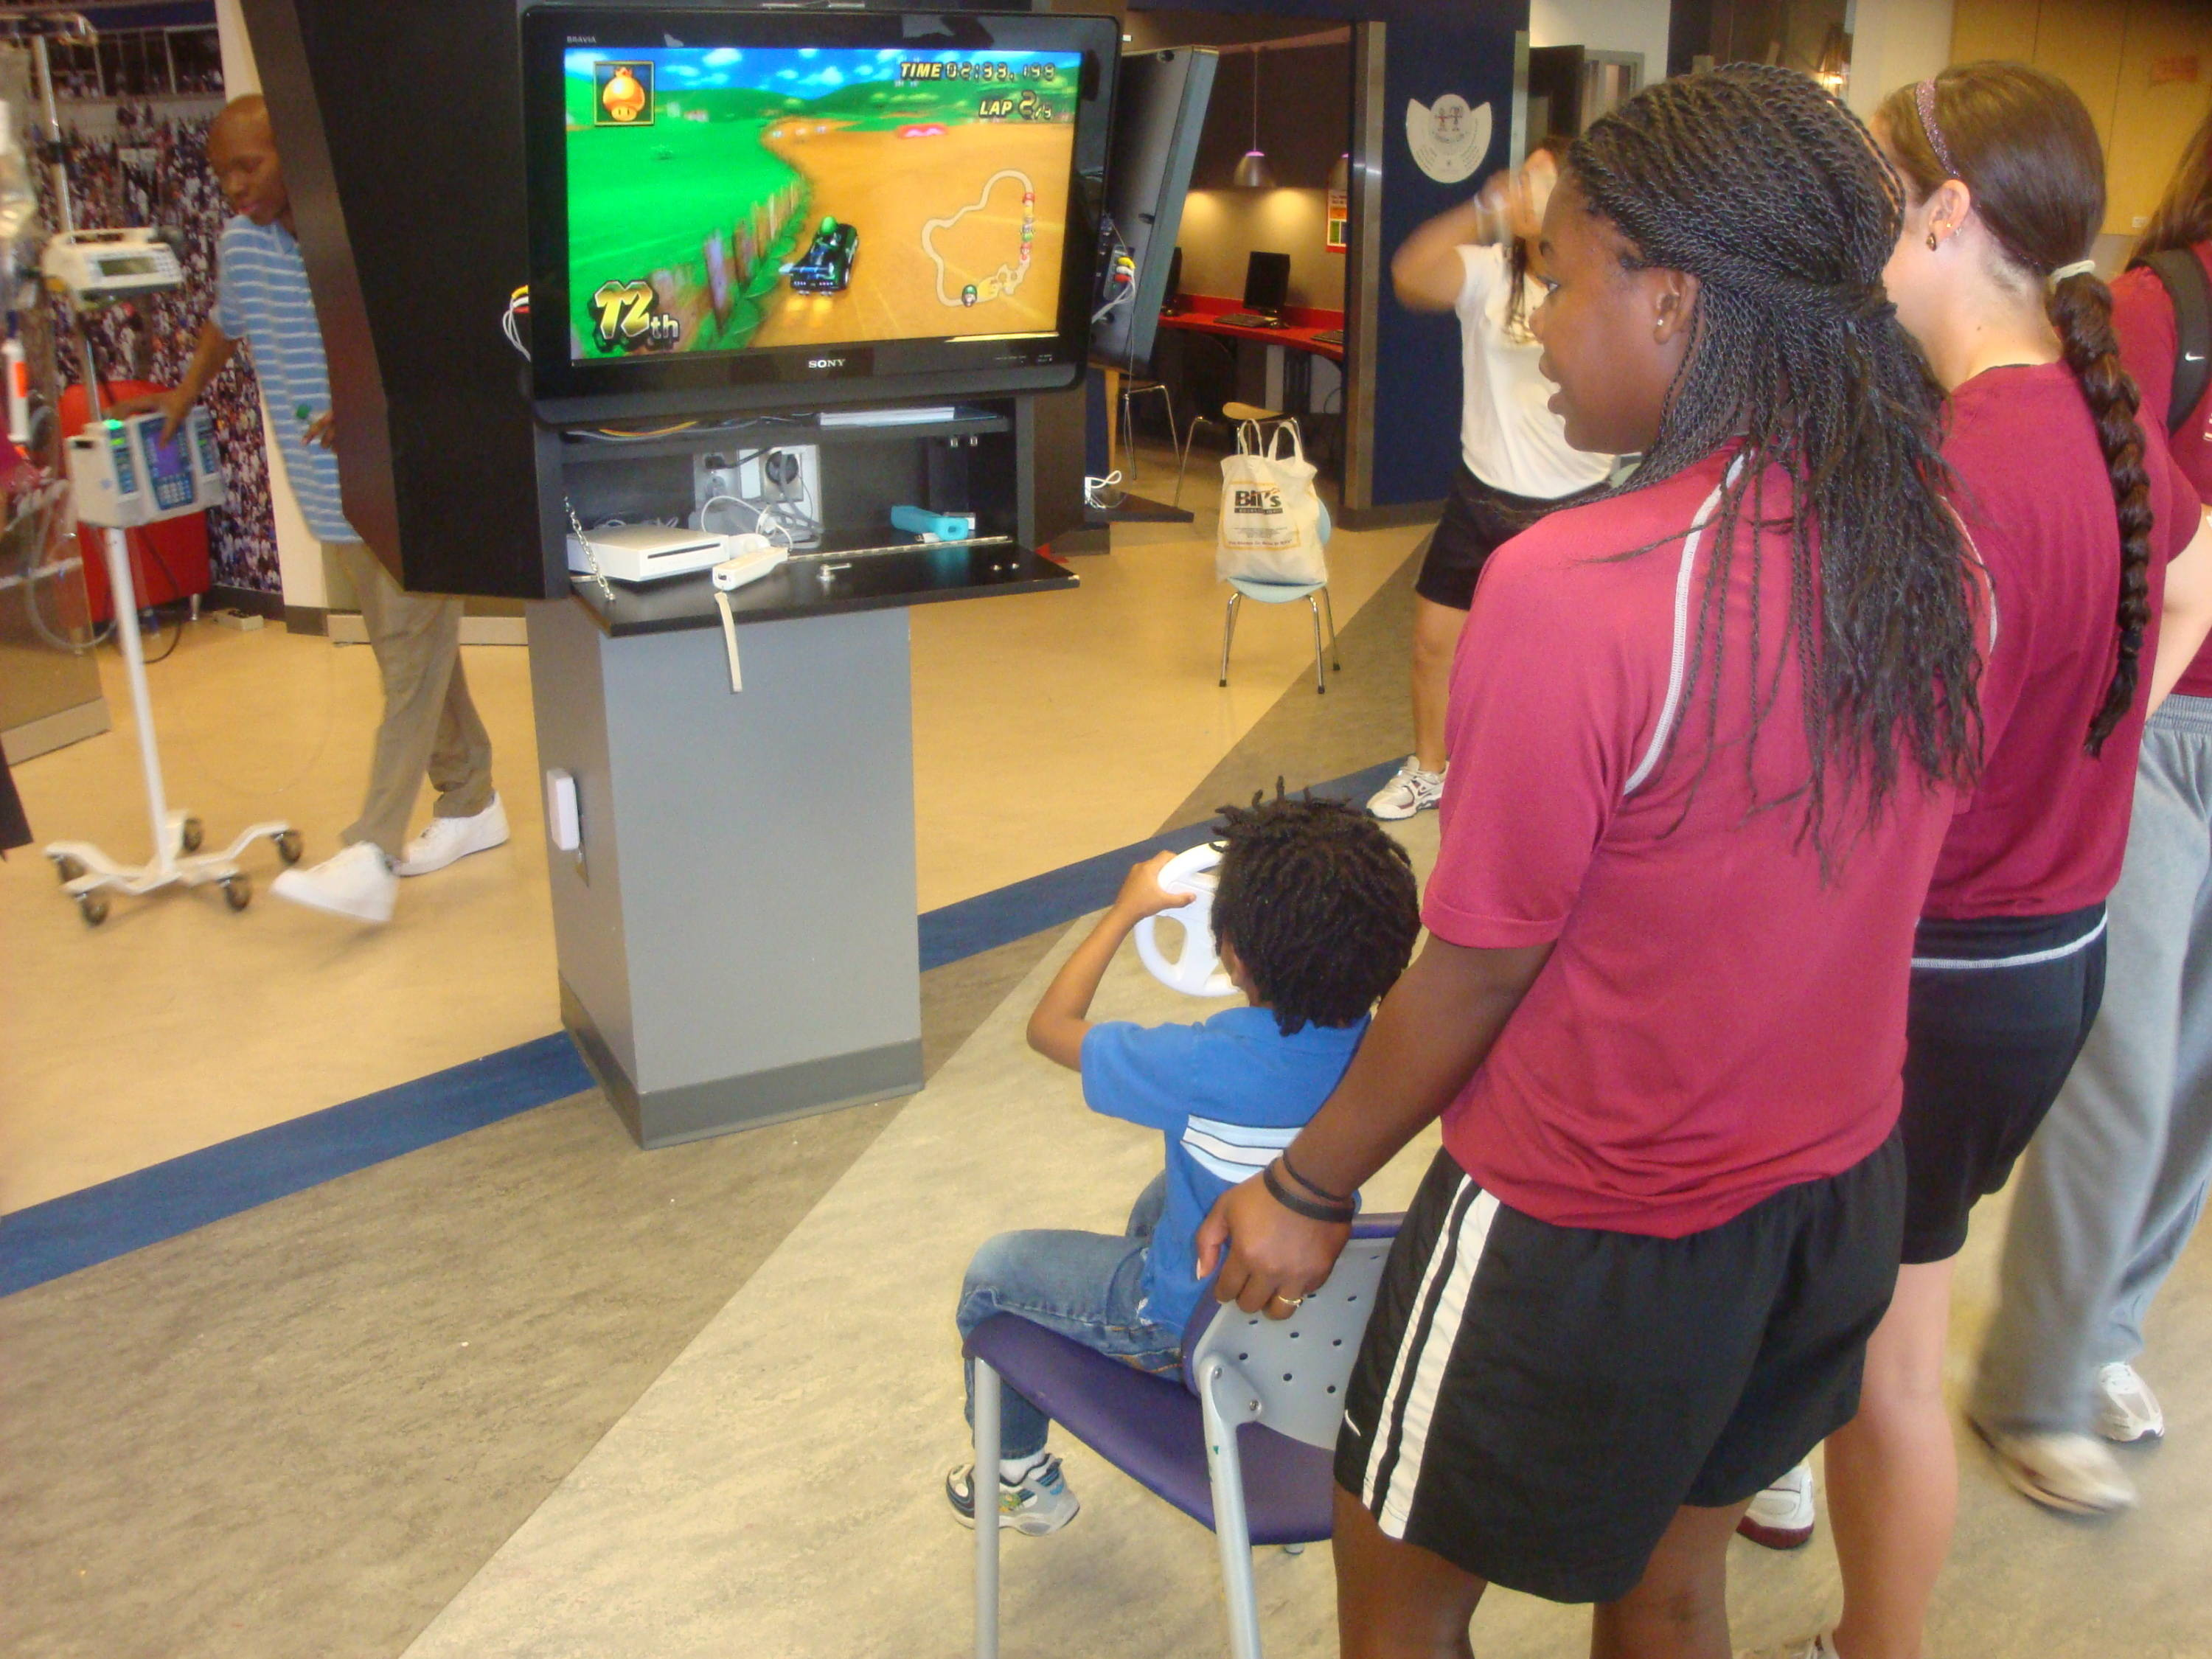 Jonathan chose Luigi in his races while Amber Bryant and Maddie O'Brien look on, hoping he can emerge victorious over the likes of Bowser, Koopa Troopa, Yoshi, the Princess and other challengers